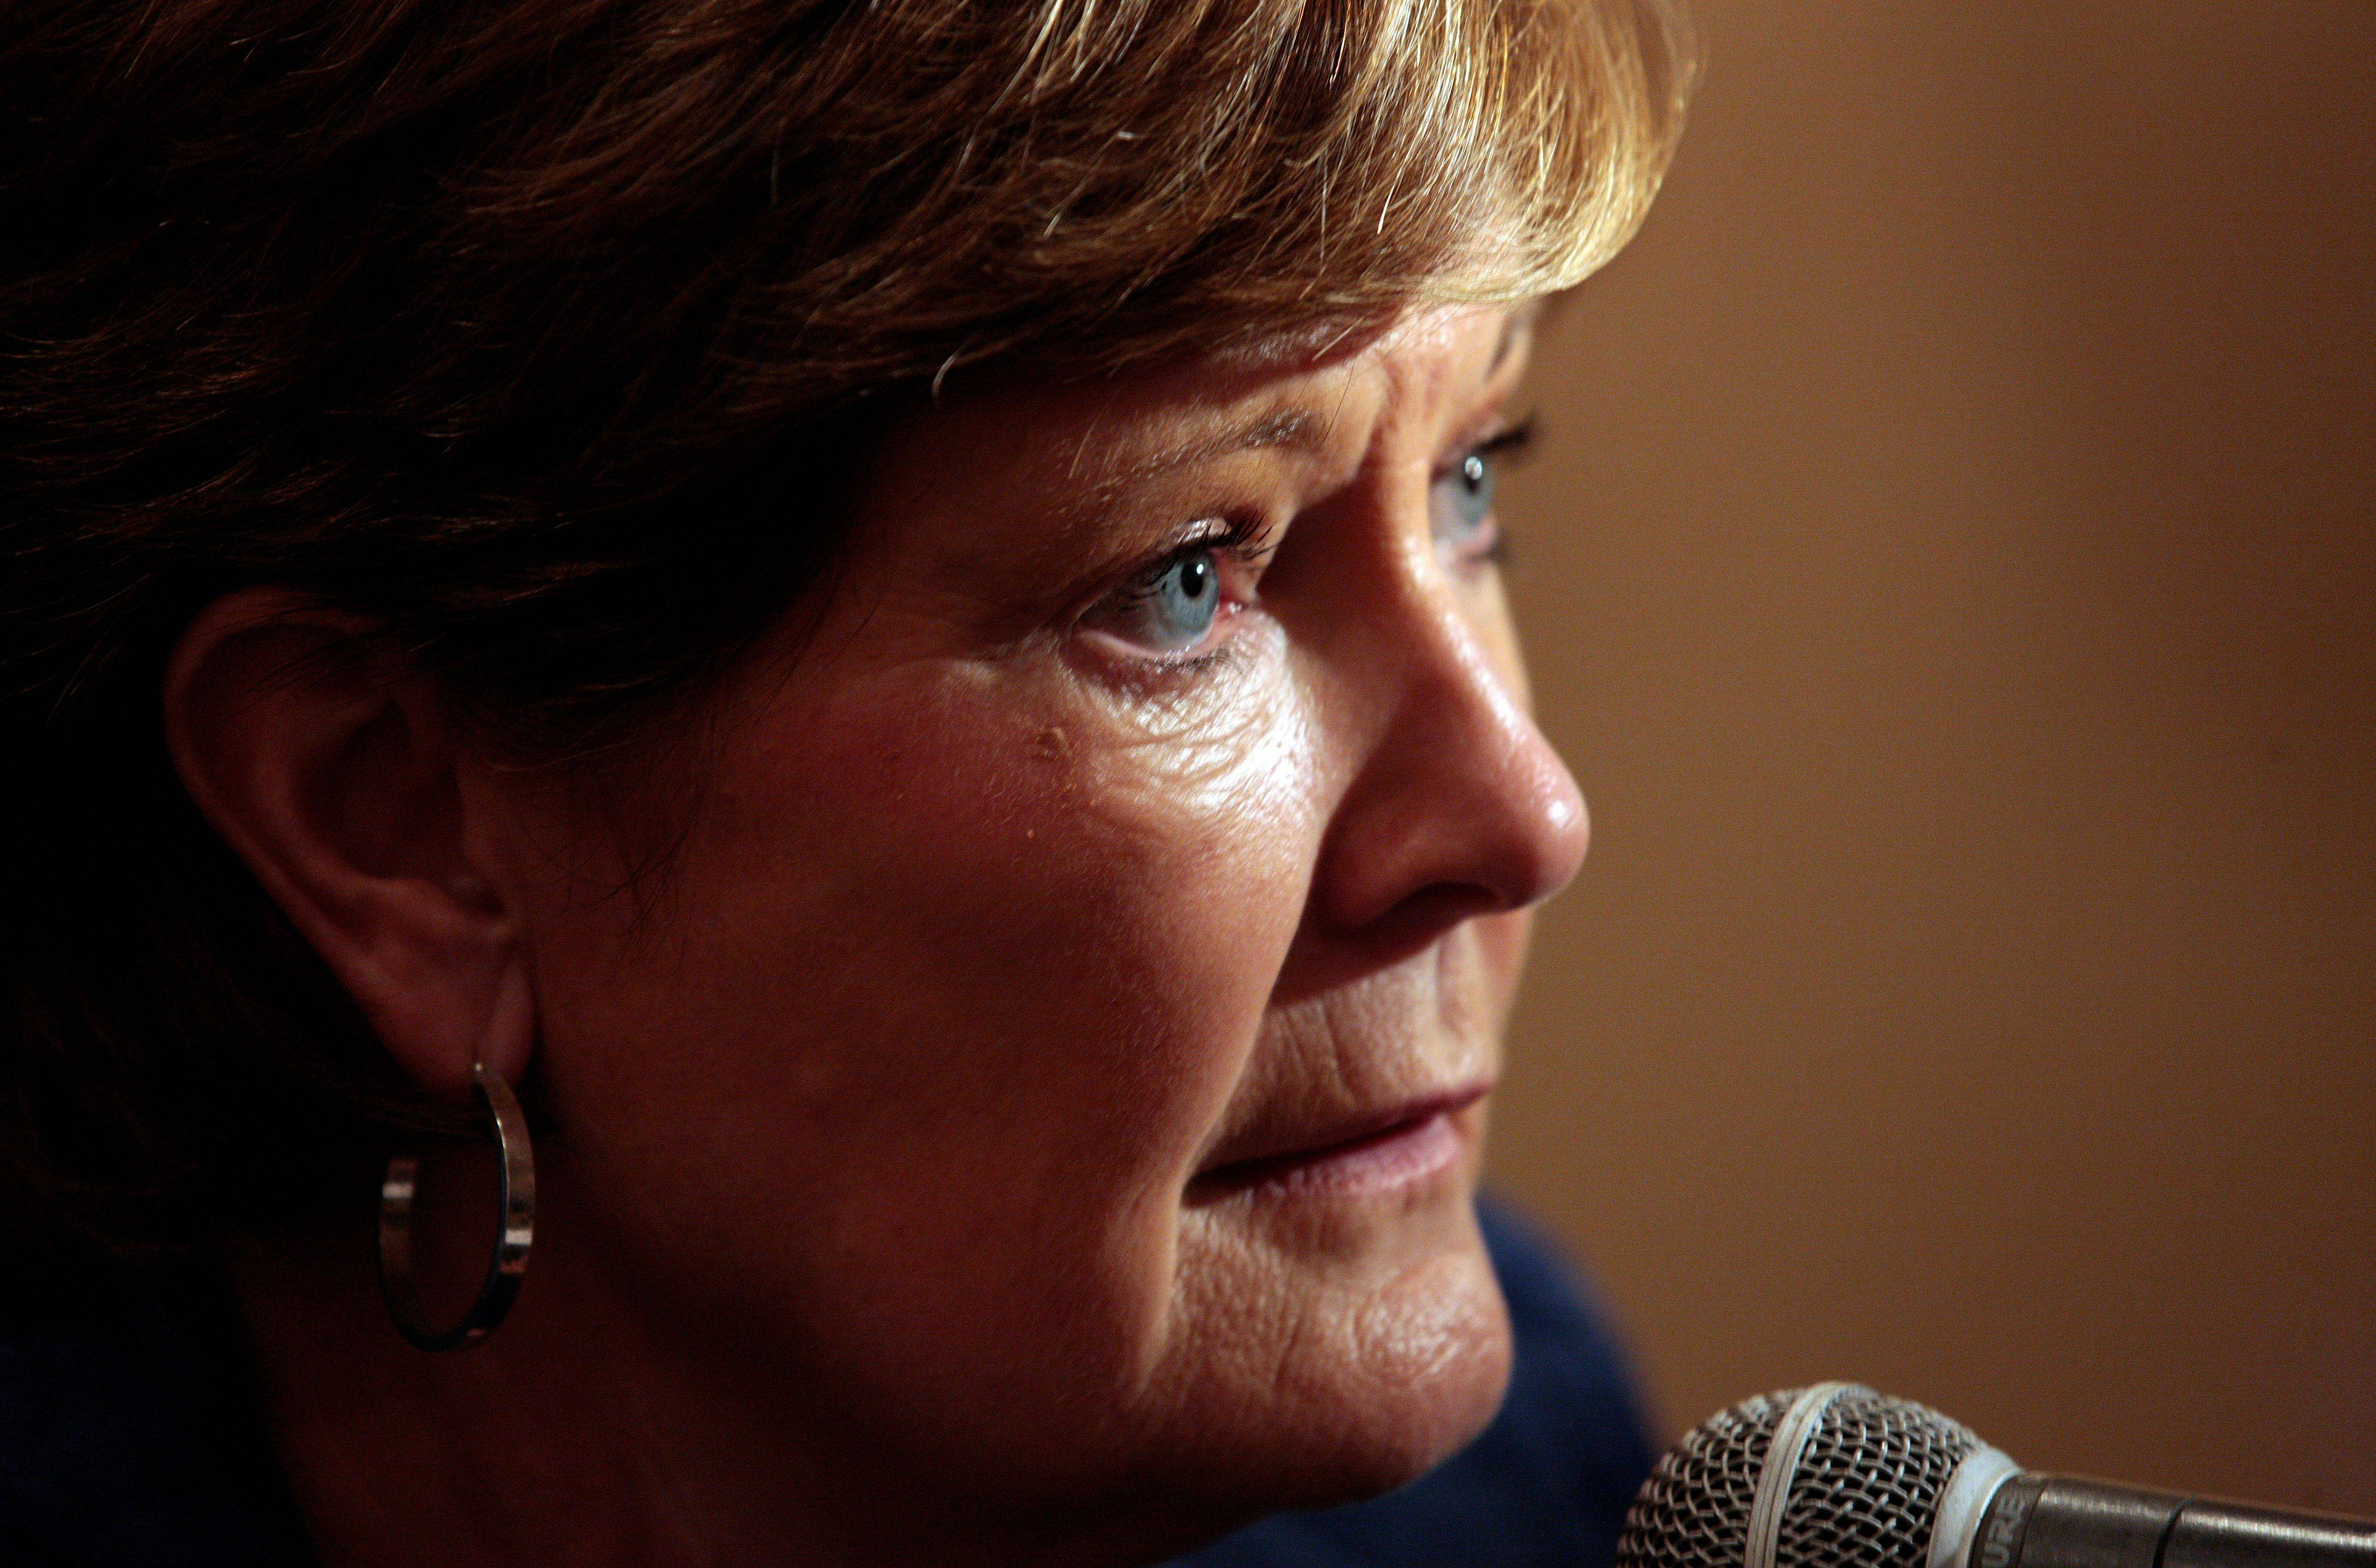 Tennessee women's basketball head coach Pat Summitt has been diagnosed with early onset dementia. The 59-year-old coach said she plans to rely on medication and mental exercises to manage the progressive condition.